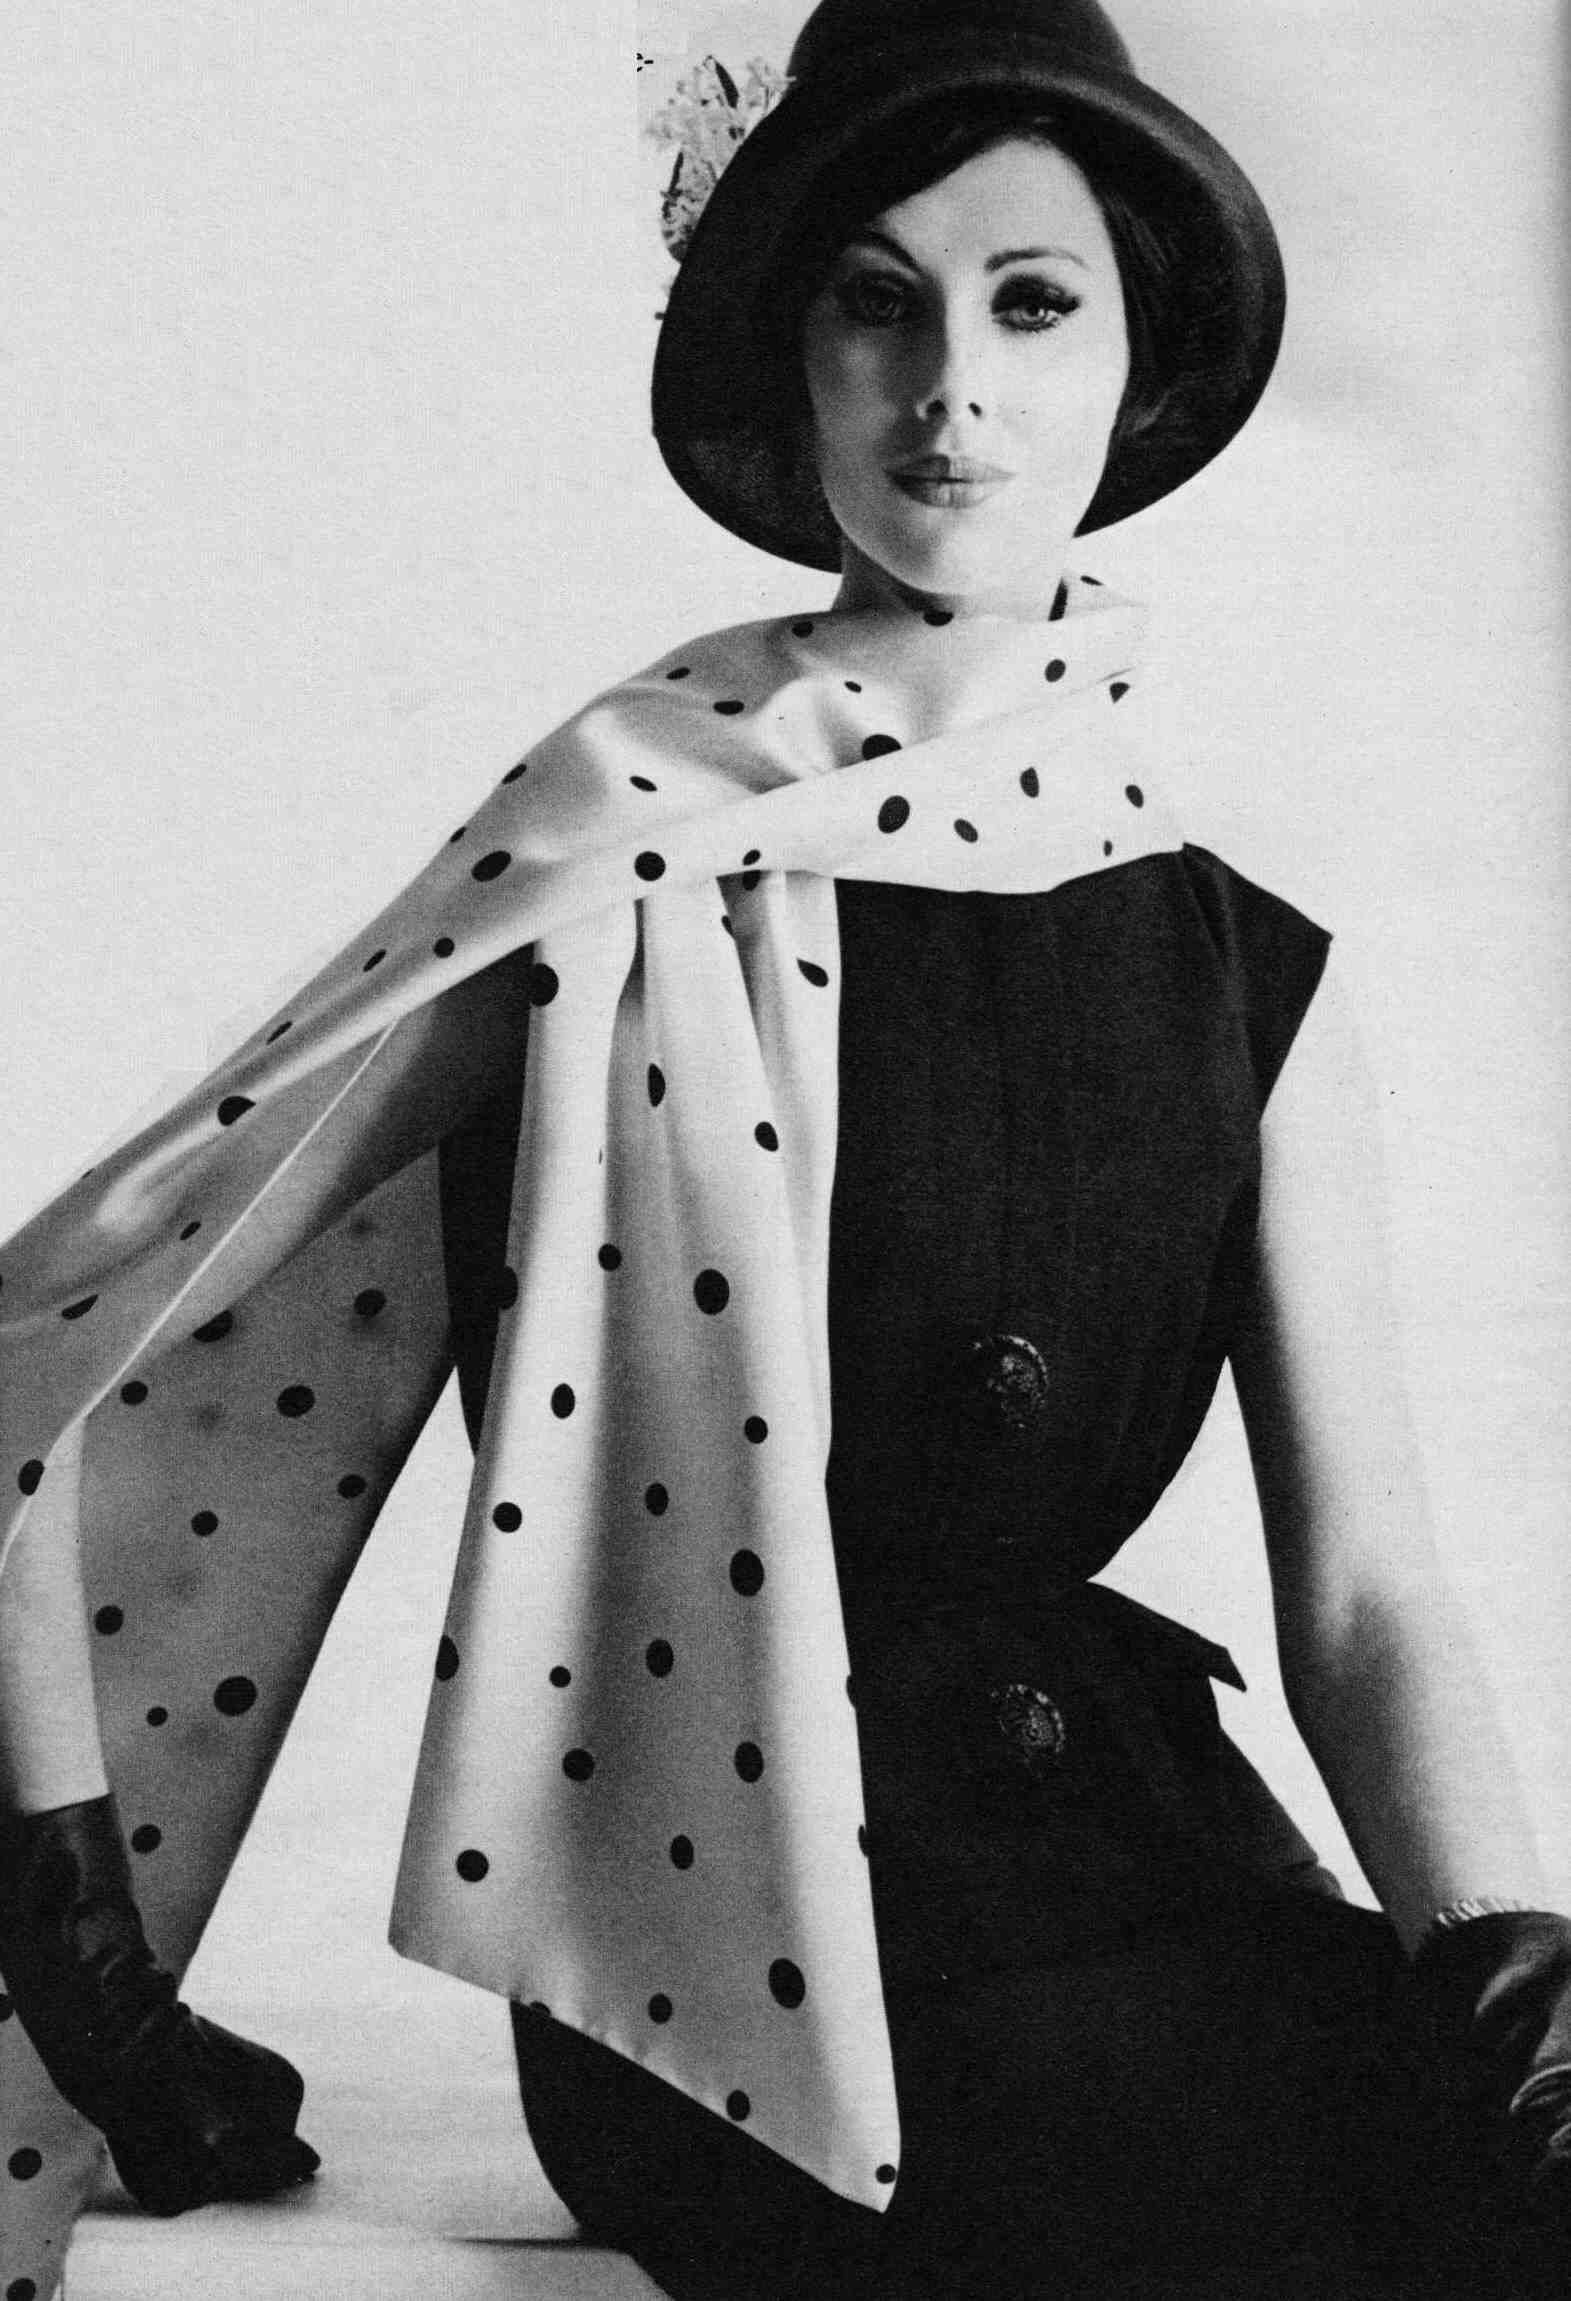 Polka dot fashion history 68